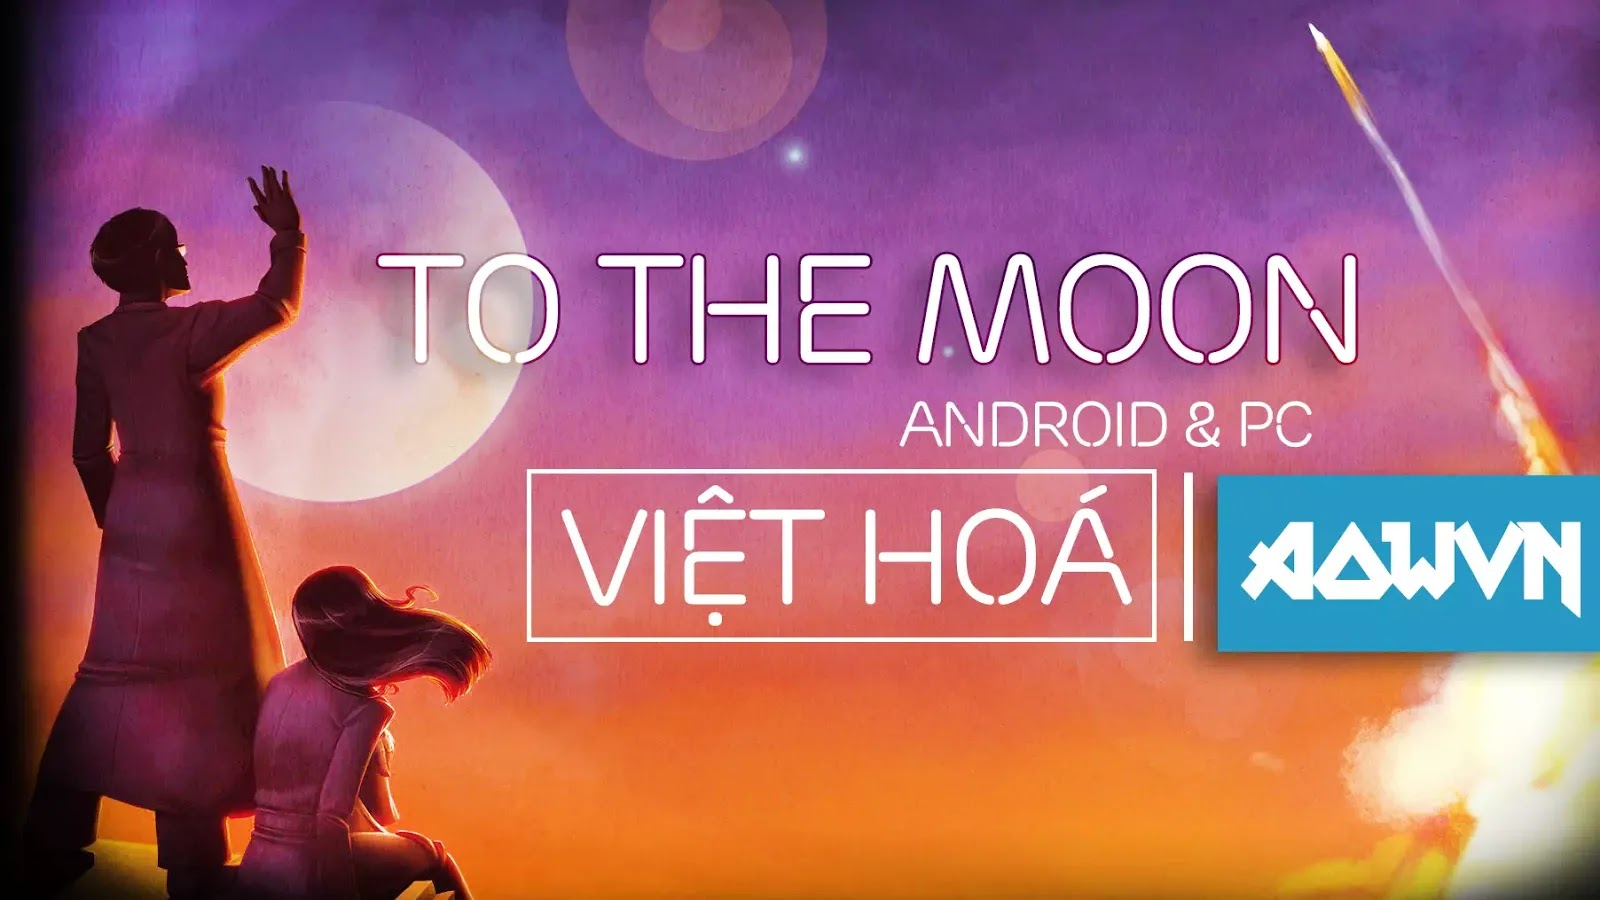 to the moon%2B - [ HOT ] To the Moon Việt Hoá Tiếng Việt | Game Android PC - Tuyệt Phẩm cực hay